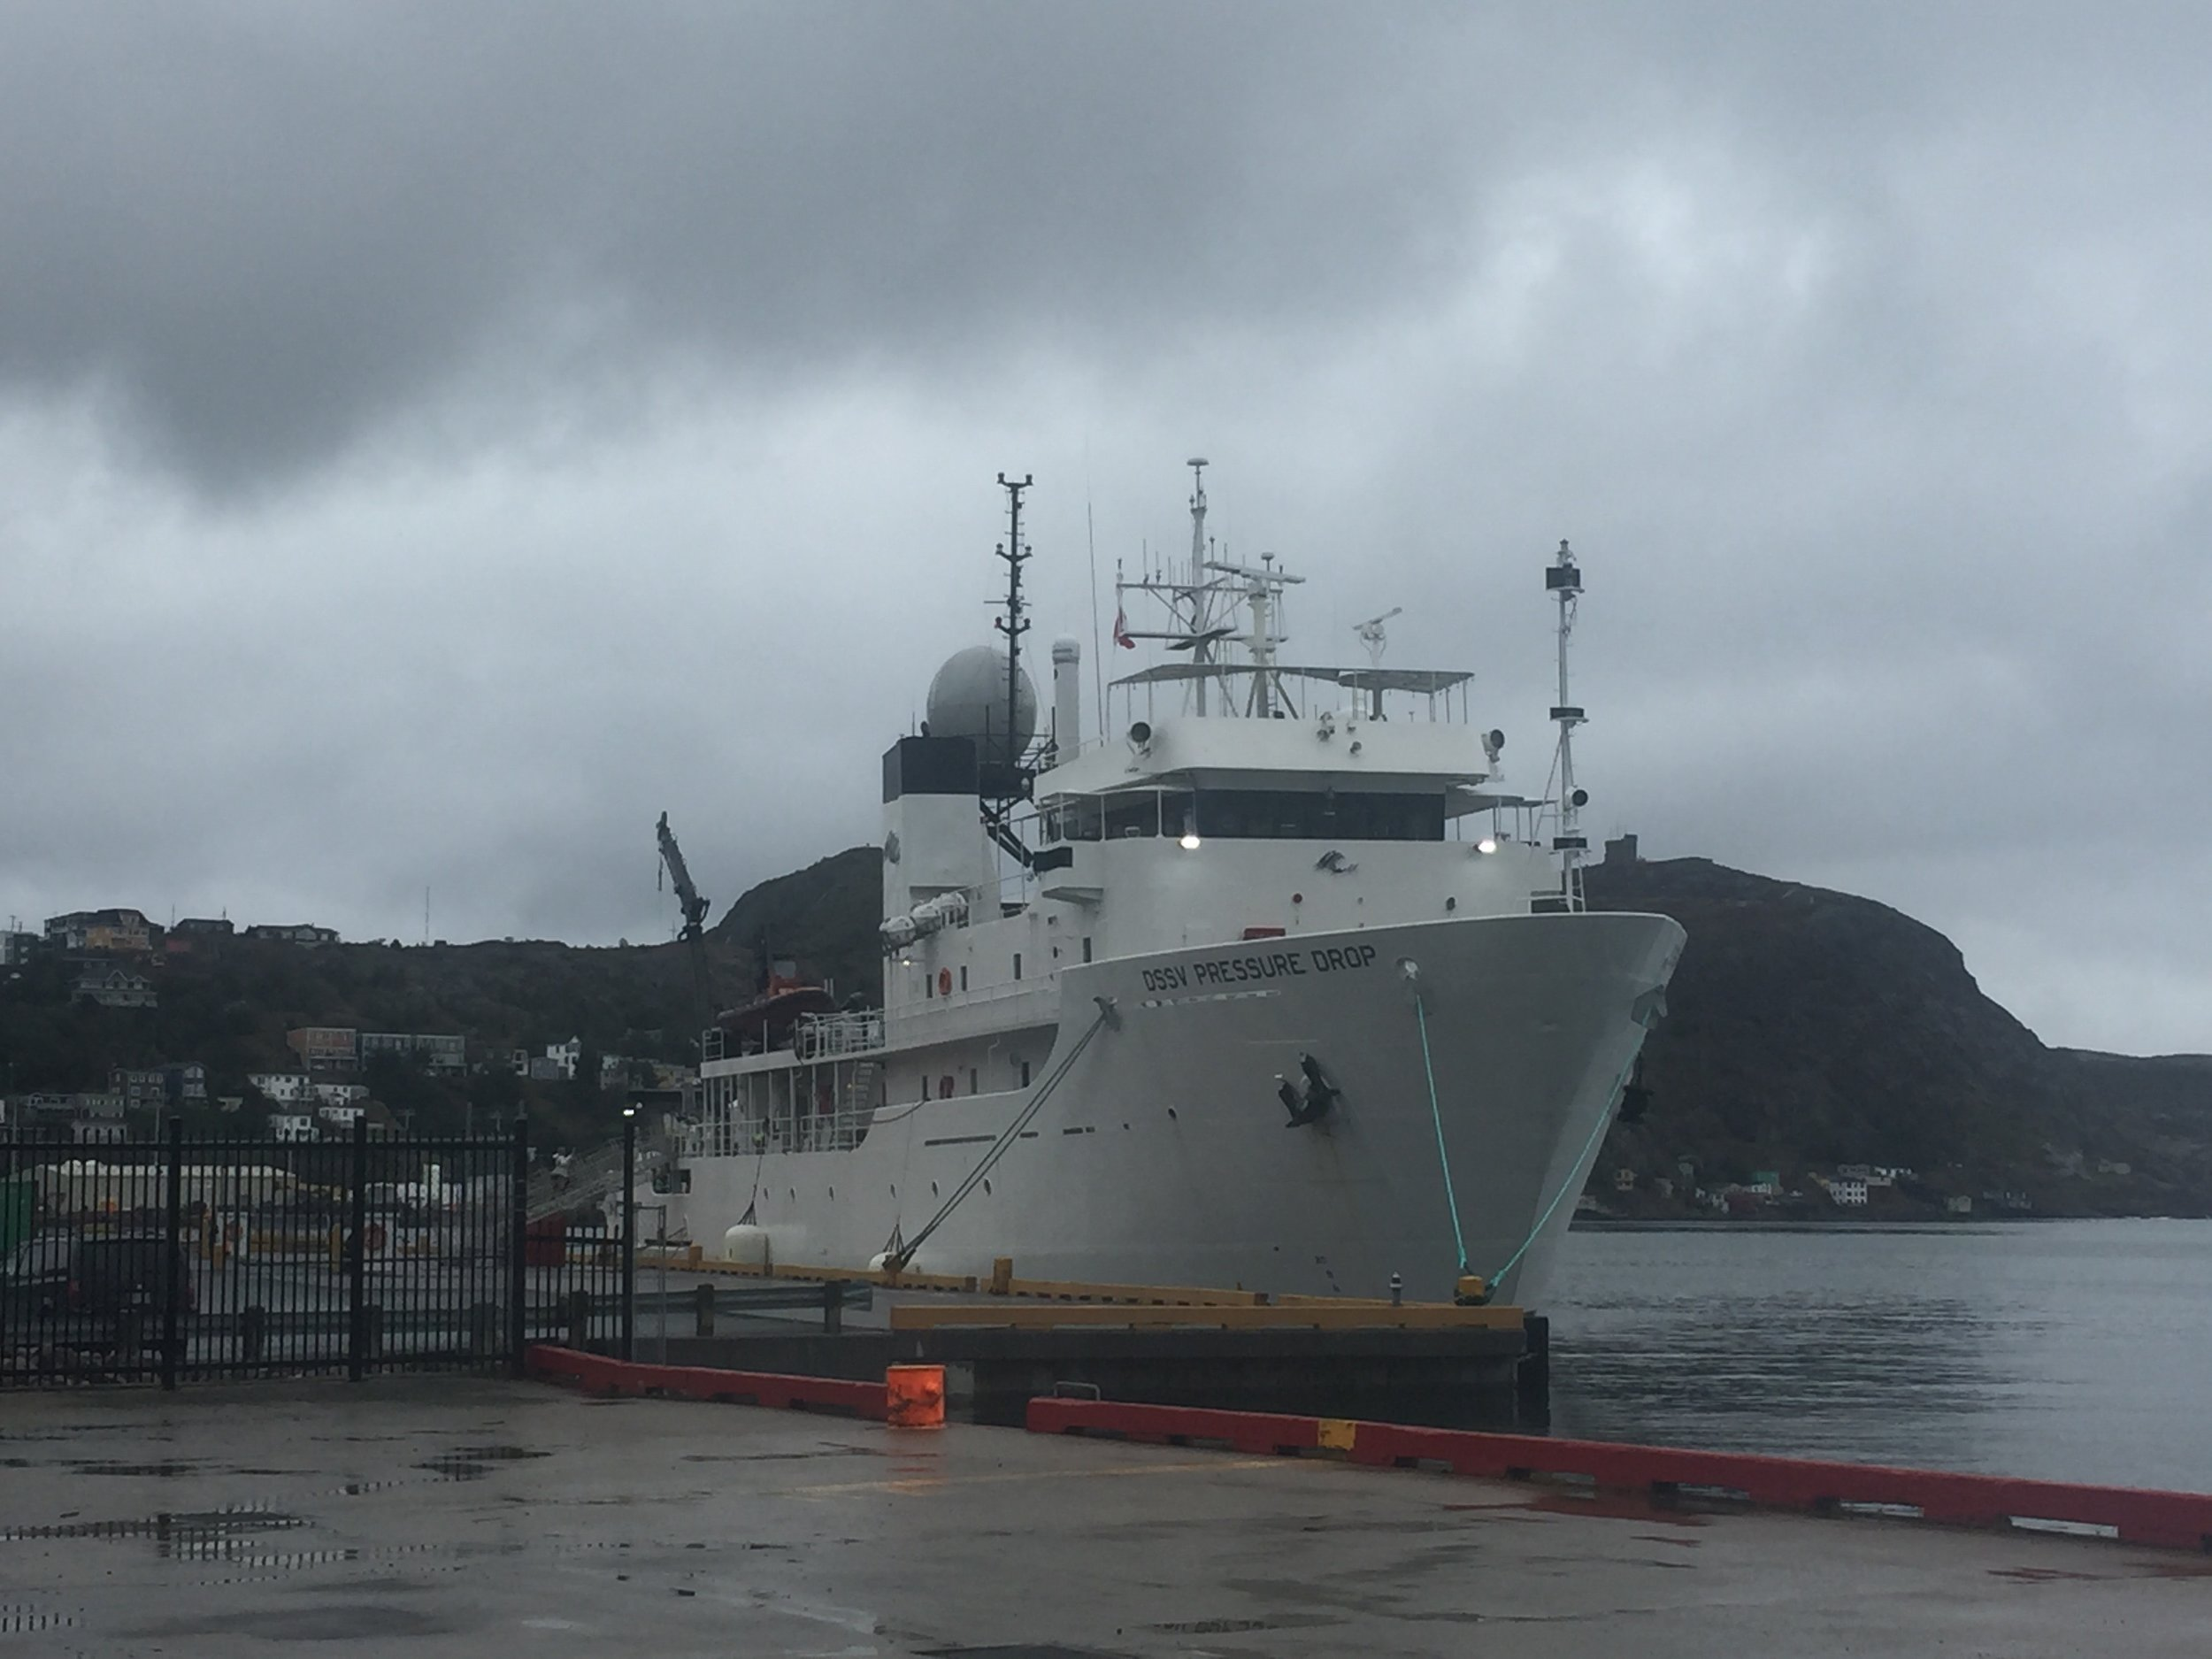 DSSV  Pressure Drop  in St. John's, September 2018